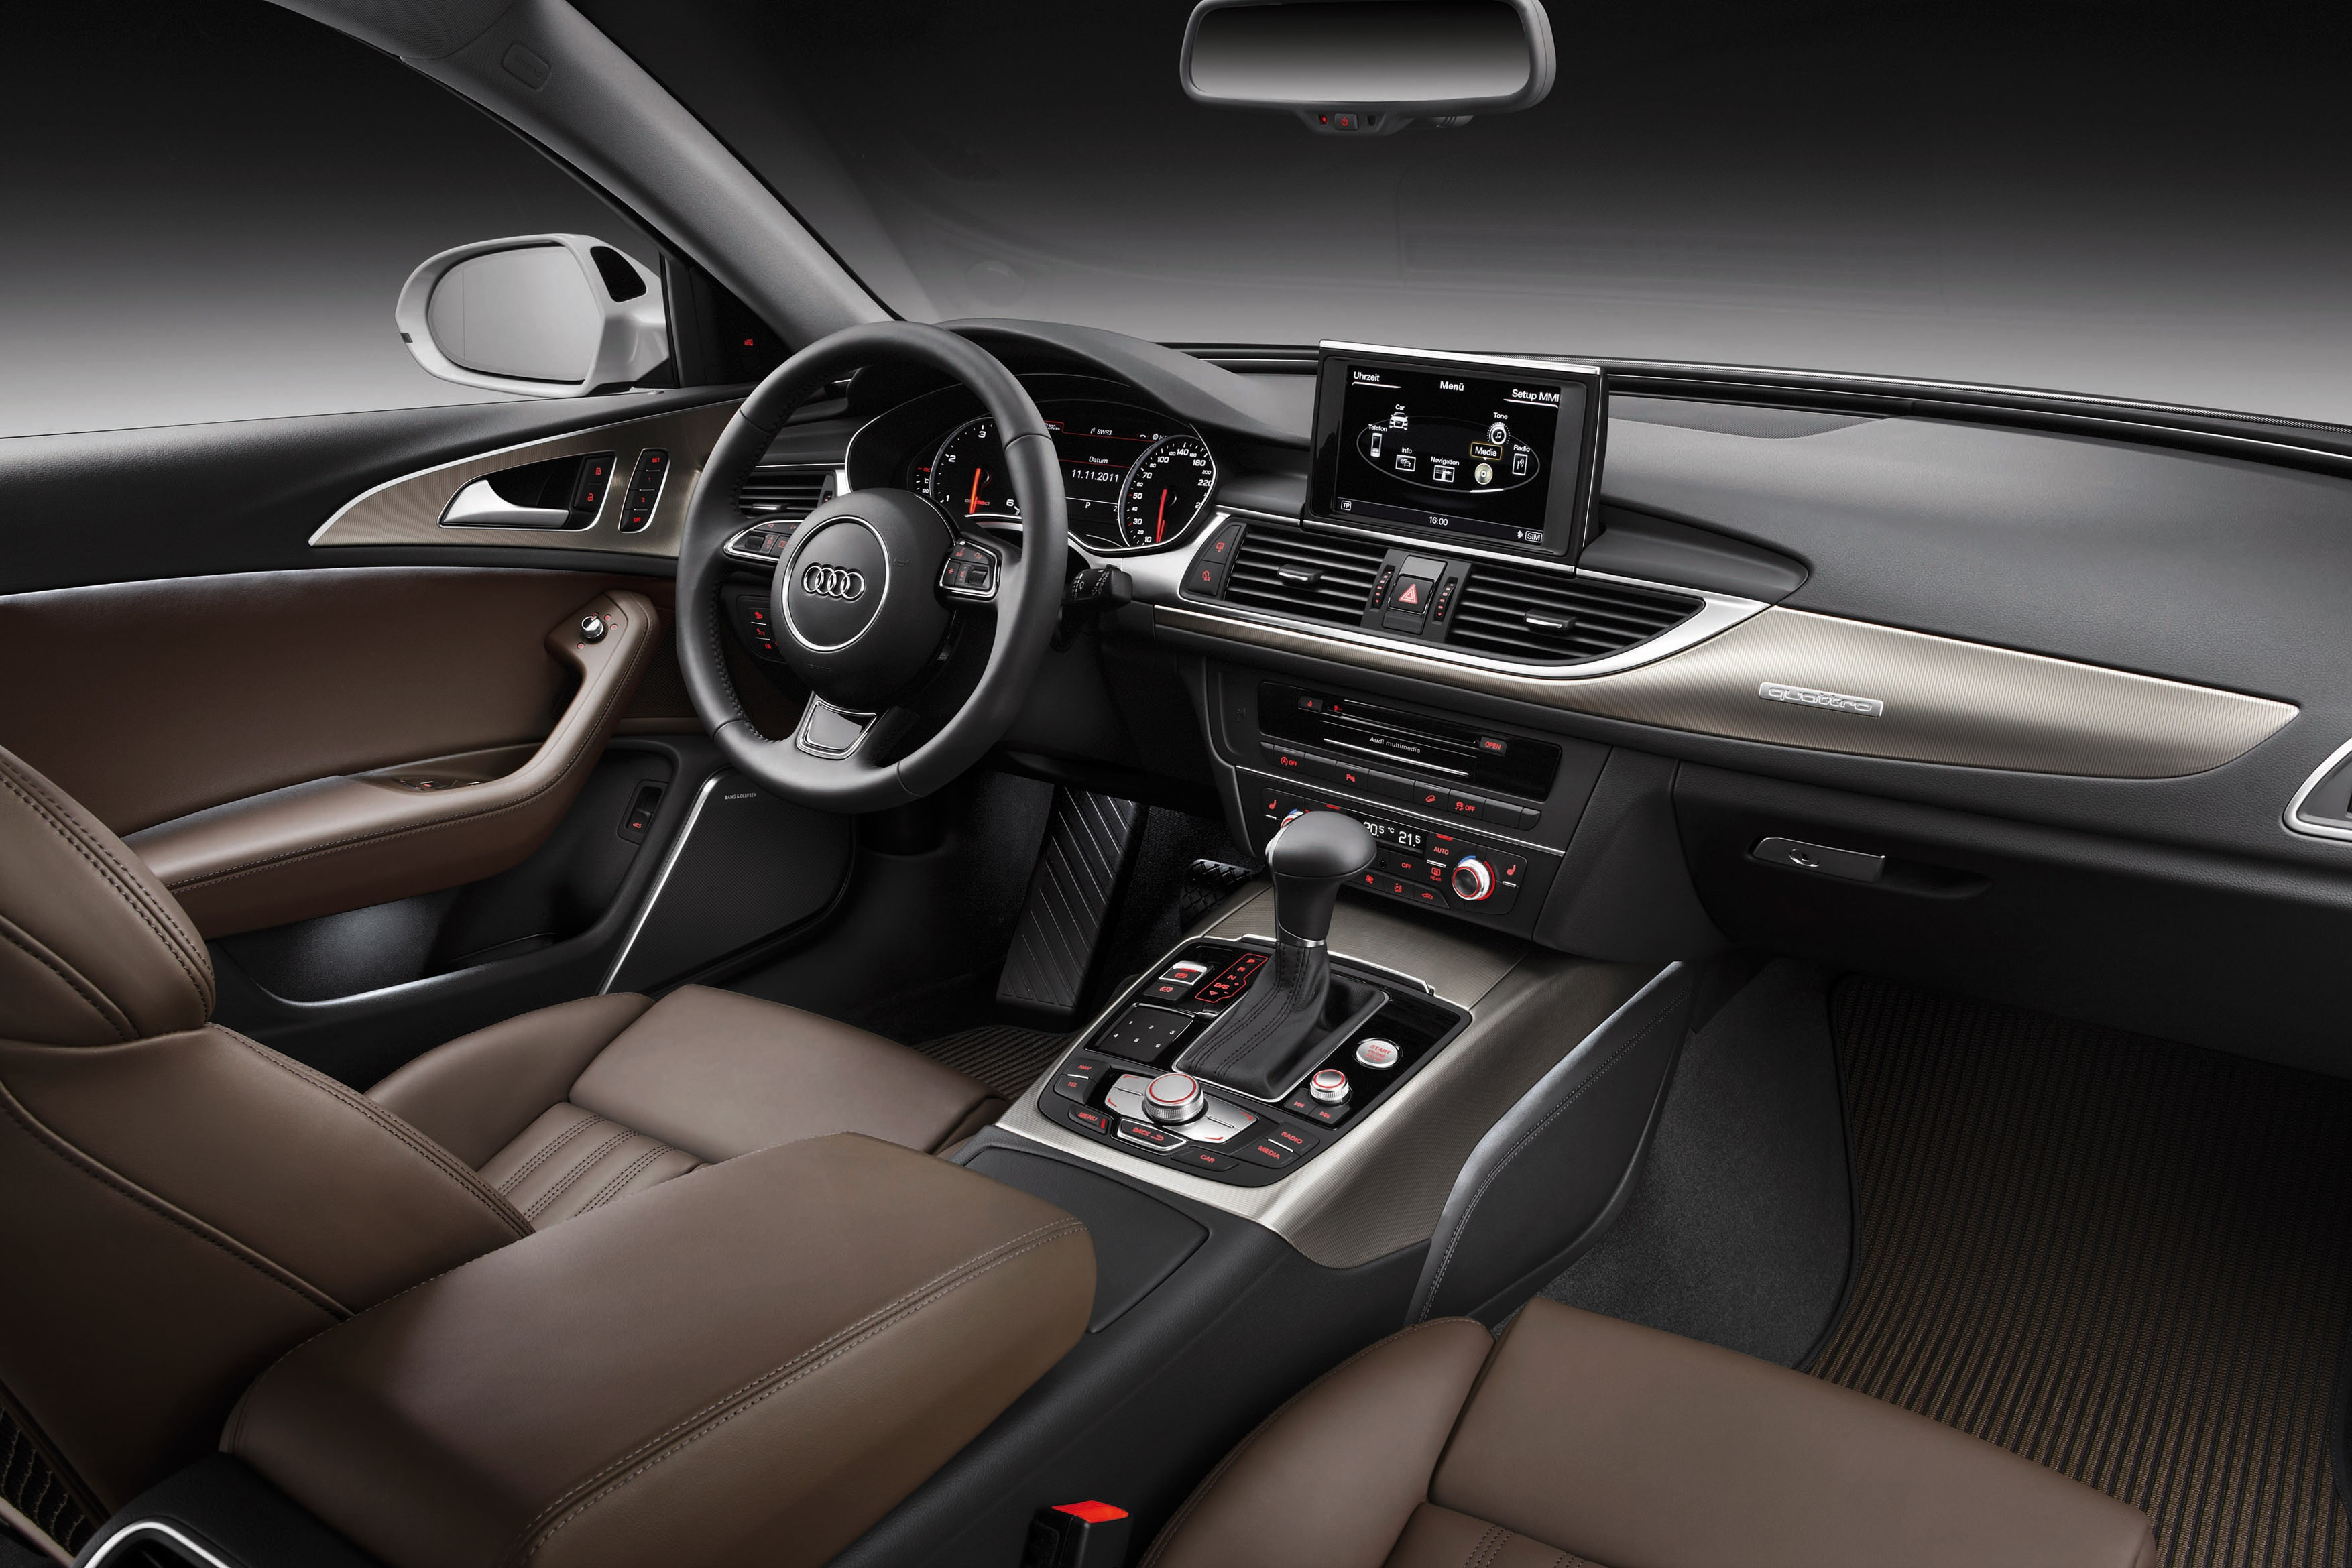 Wallpaper audi a6 c7 quattro off road audi rs 6 for Interieur cuir audi a6